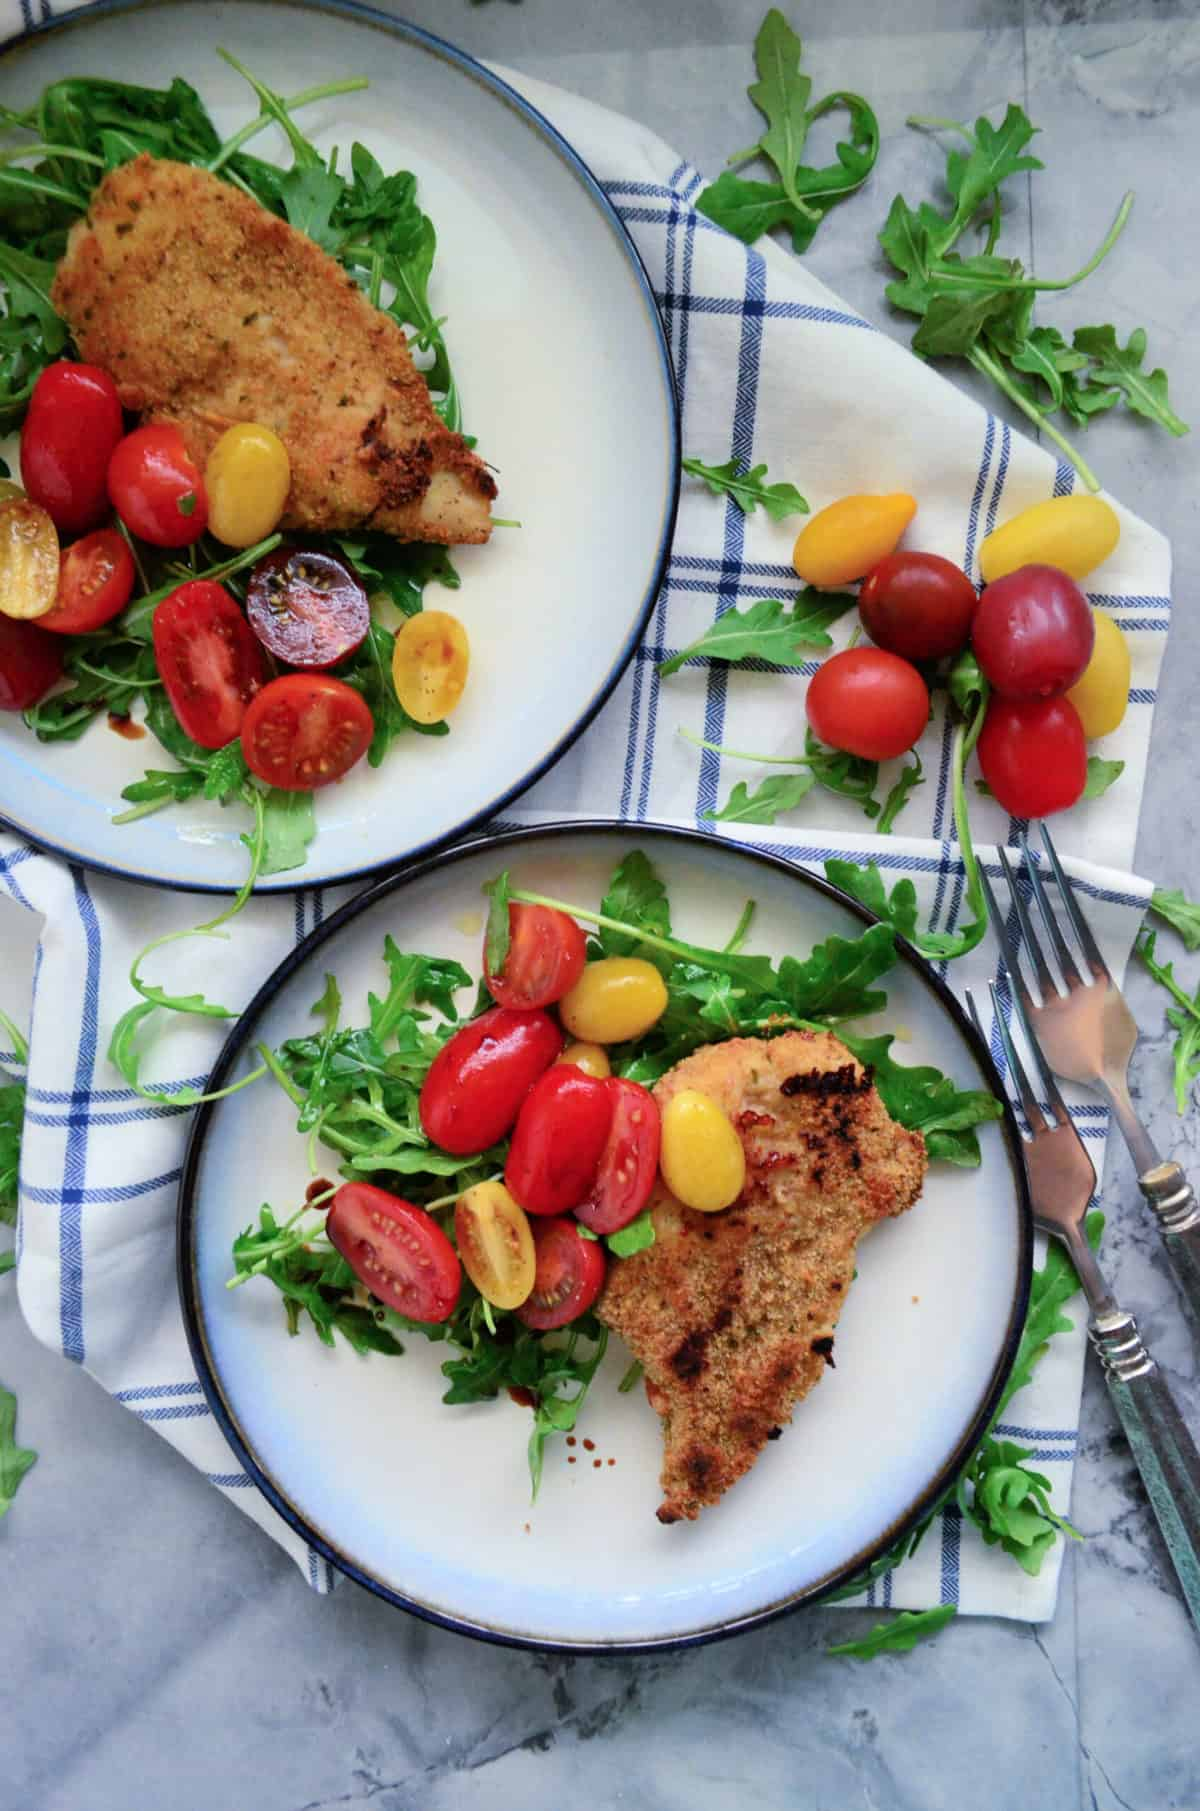 Top view of two white plate with a blue rim filled with arugula and tomato salad with a chicken cutlet on top.